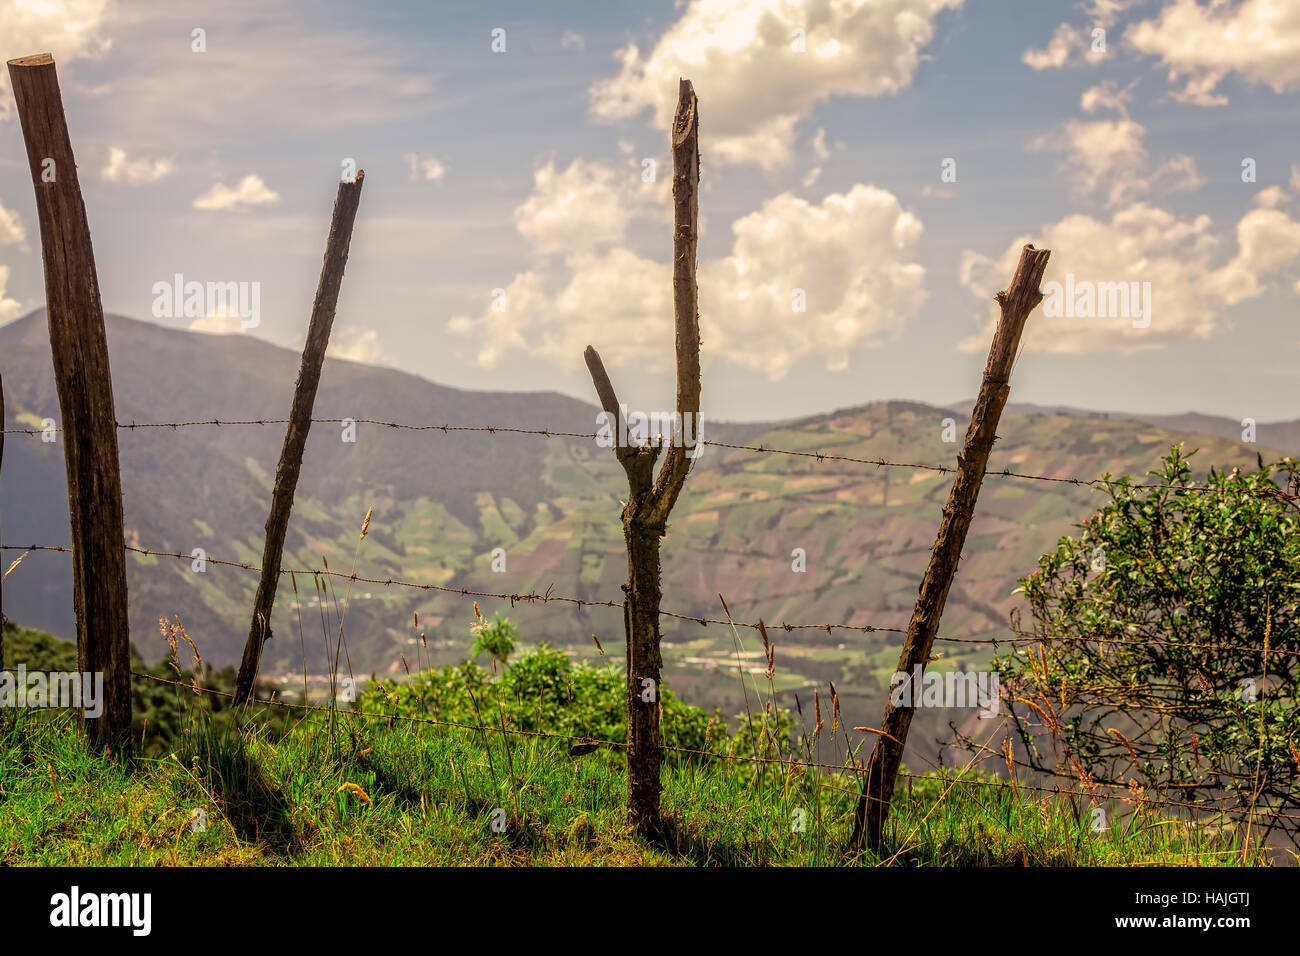 Old Wood Fence Posts With Barb Wire, Aerial View Of Andean Cordillera In The Background, Ecuador, South America - Stock Image